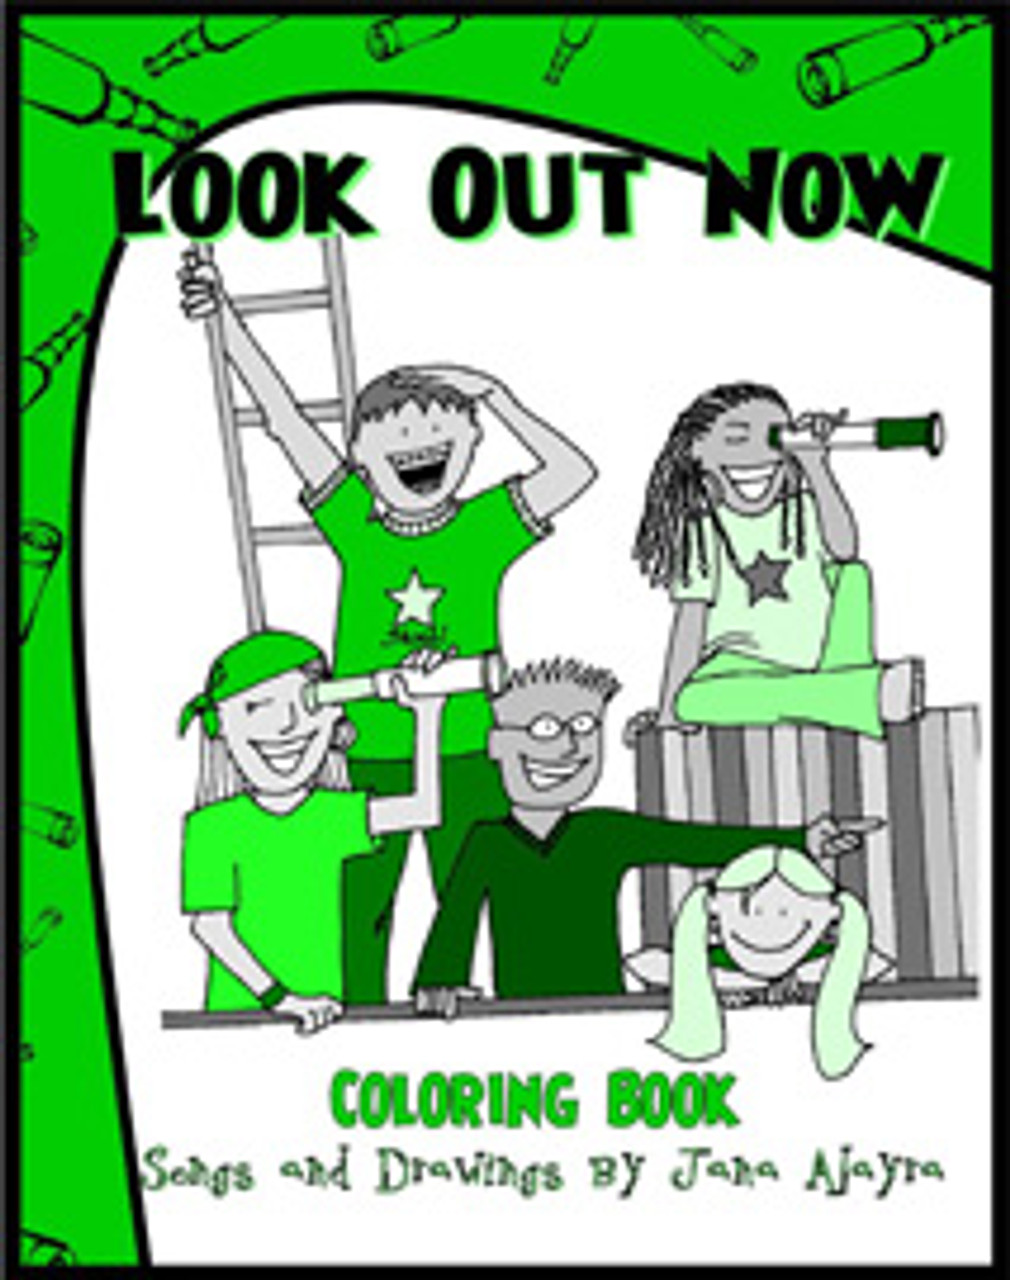 Look Out Now (coloring book)